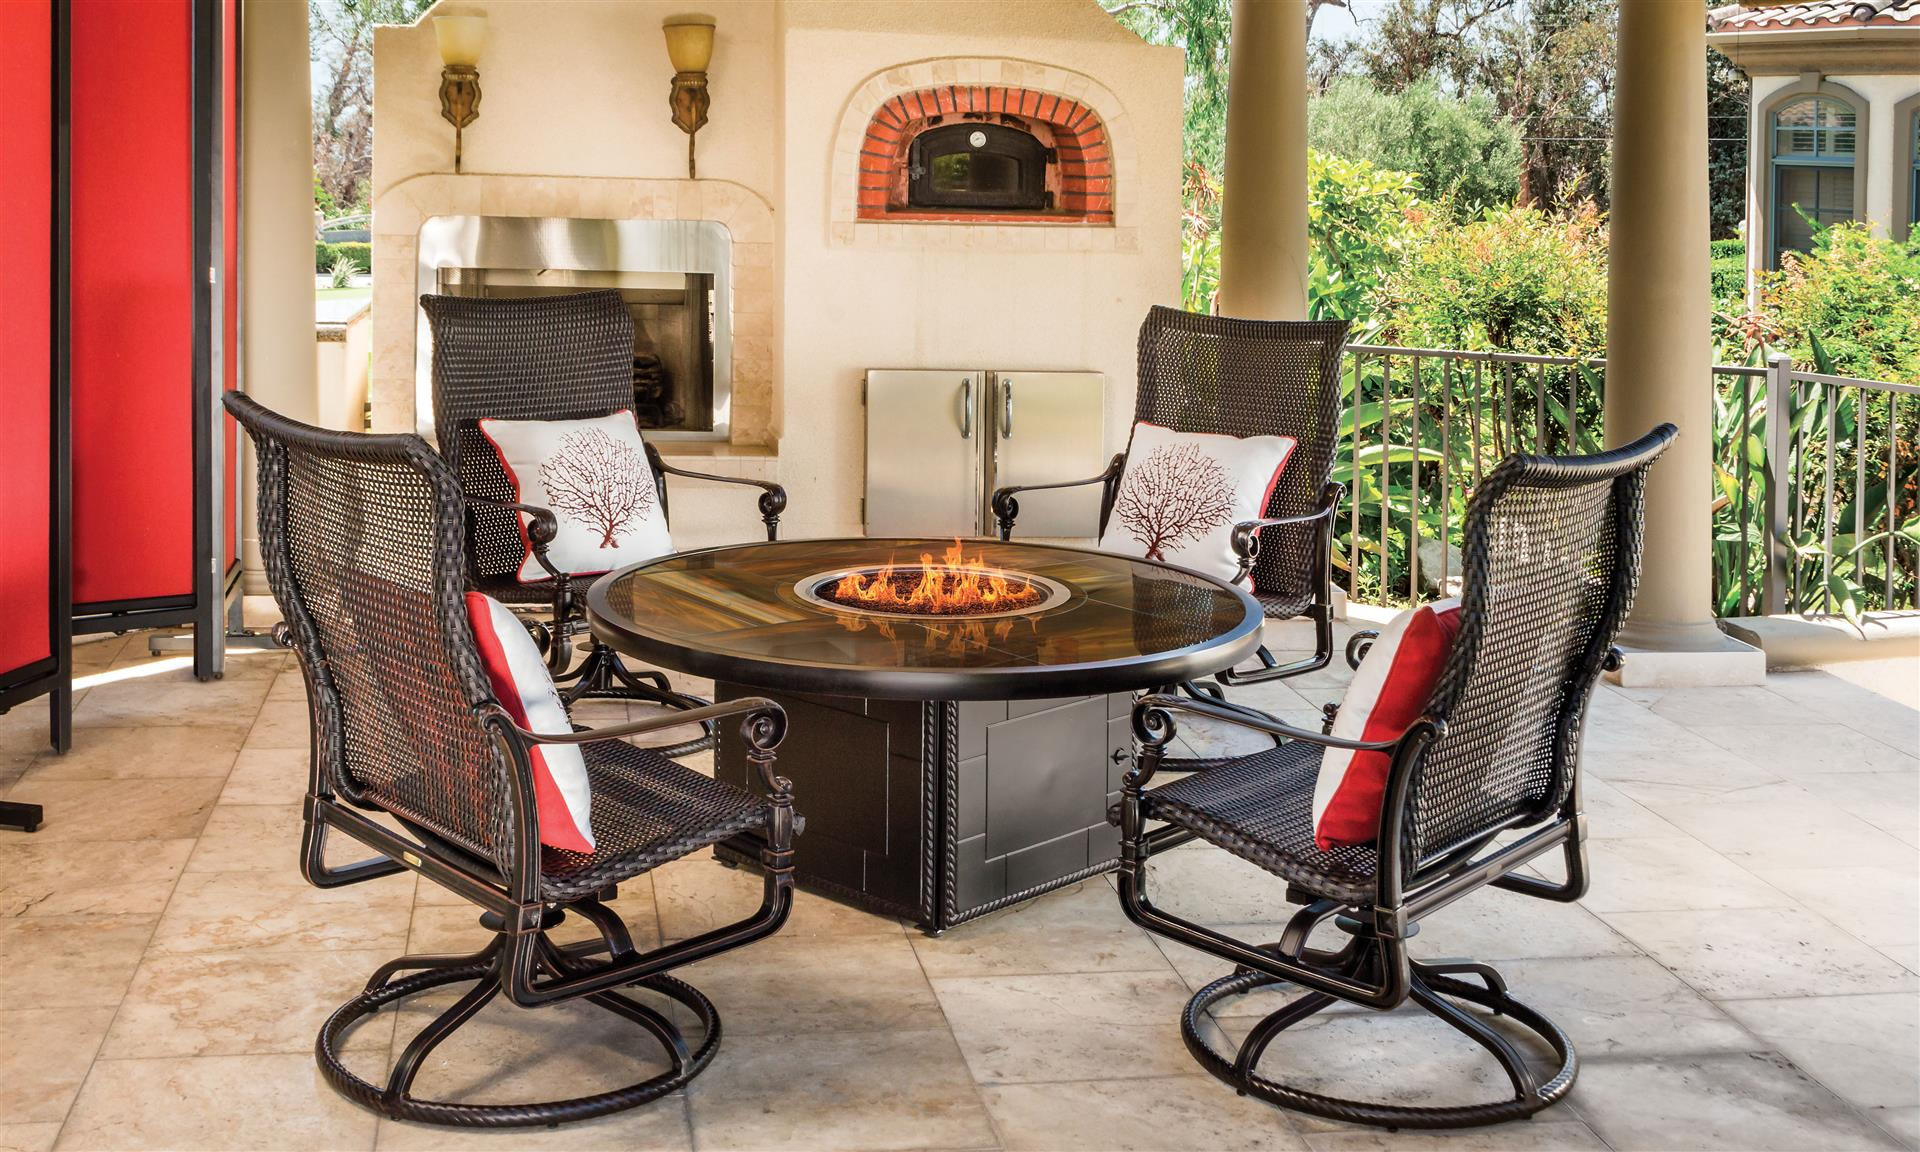 Outdoor Living - Sequoia Supply on Outdoor Living And Patio id=78169